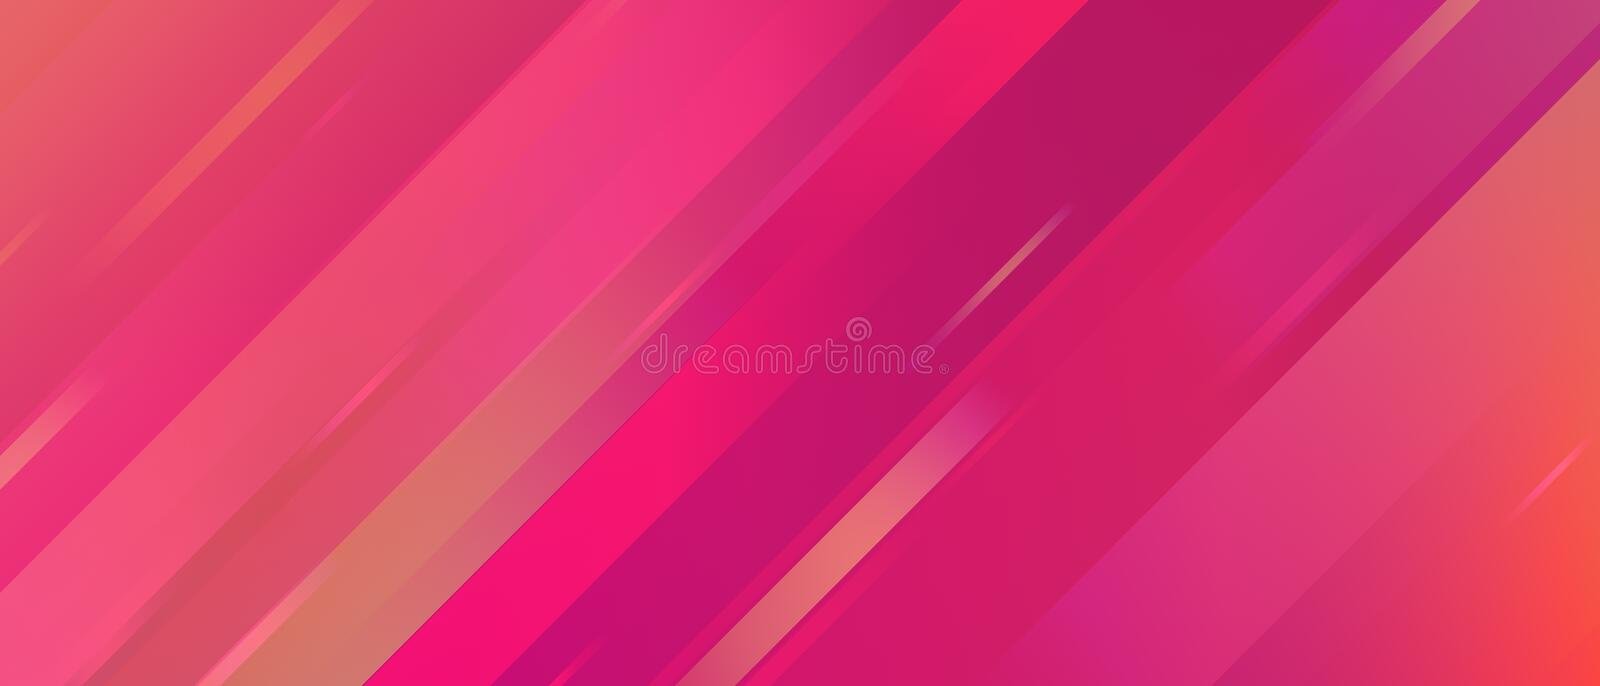 Abstract colors background royalty free stock image